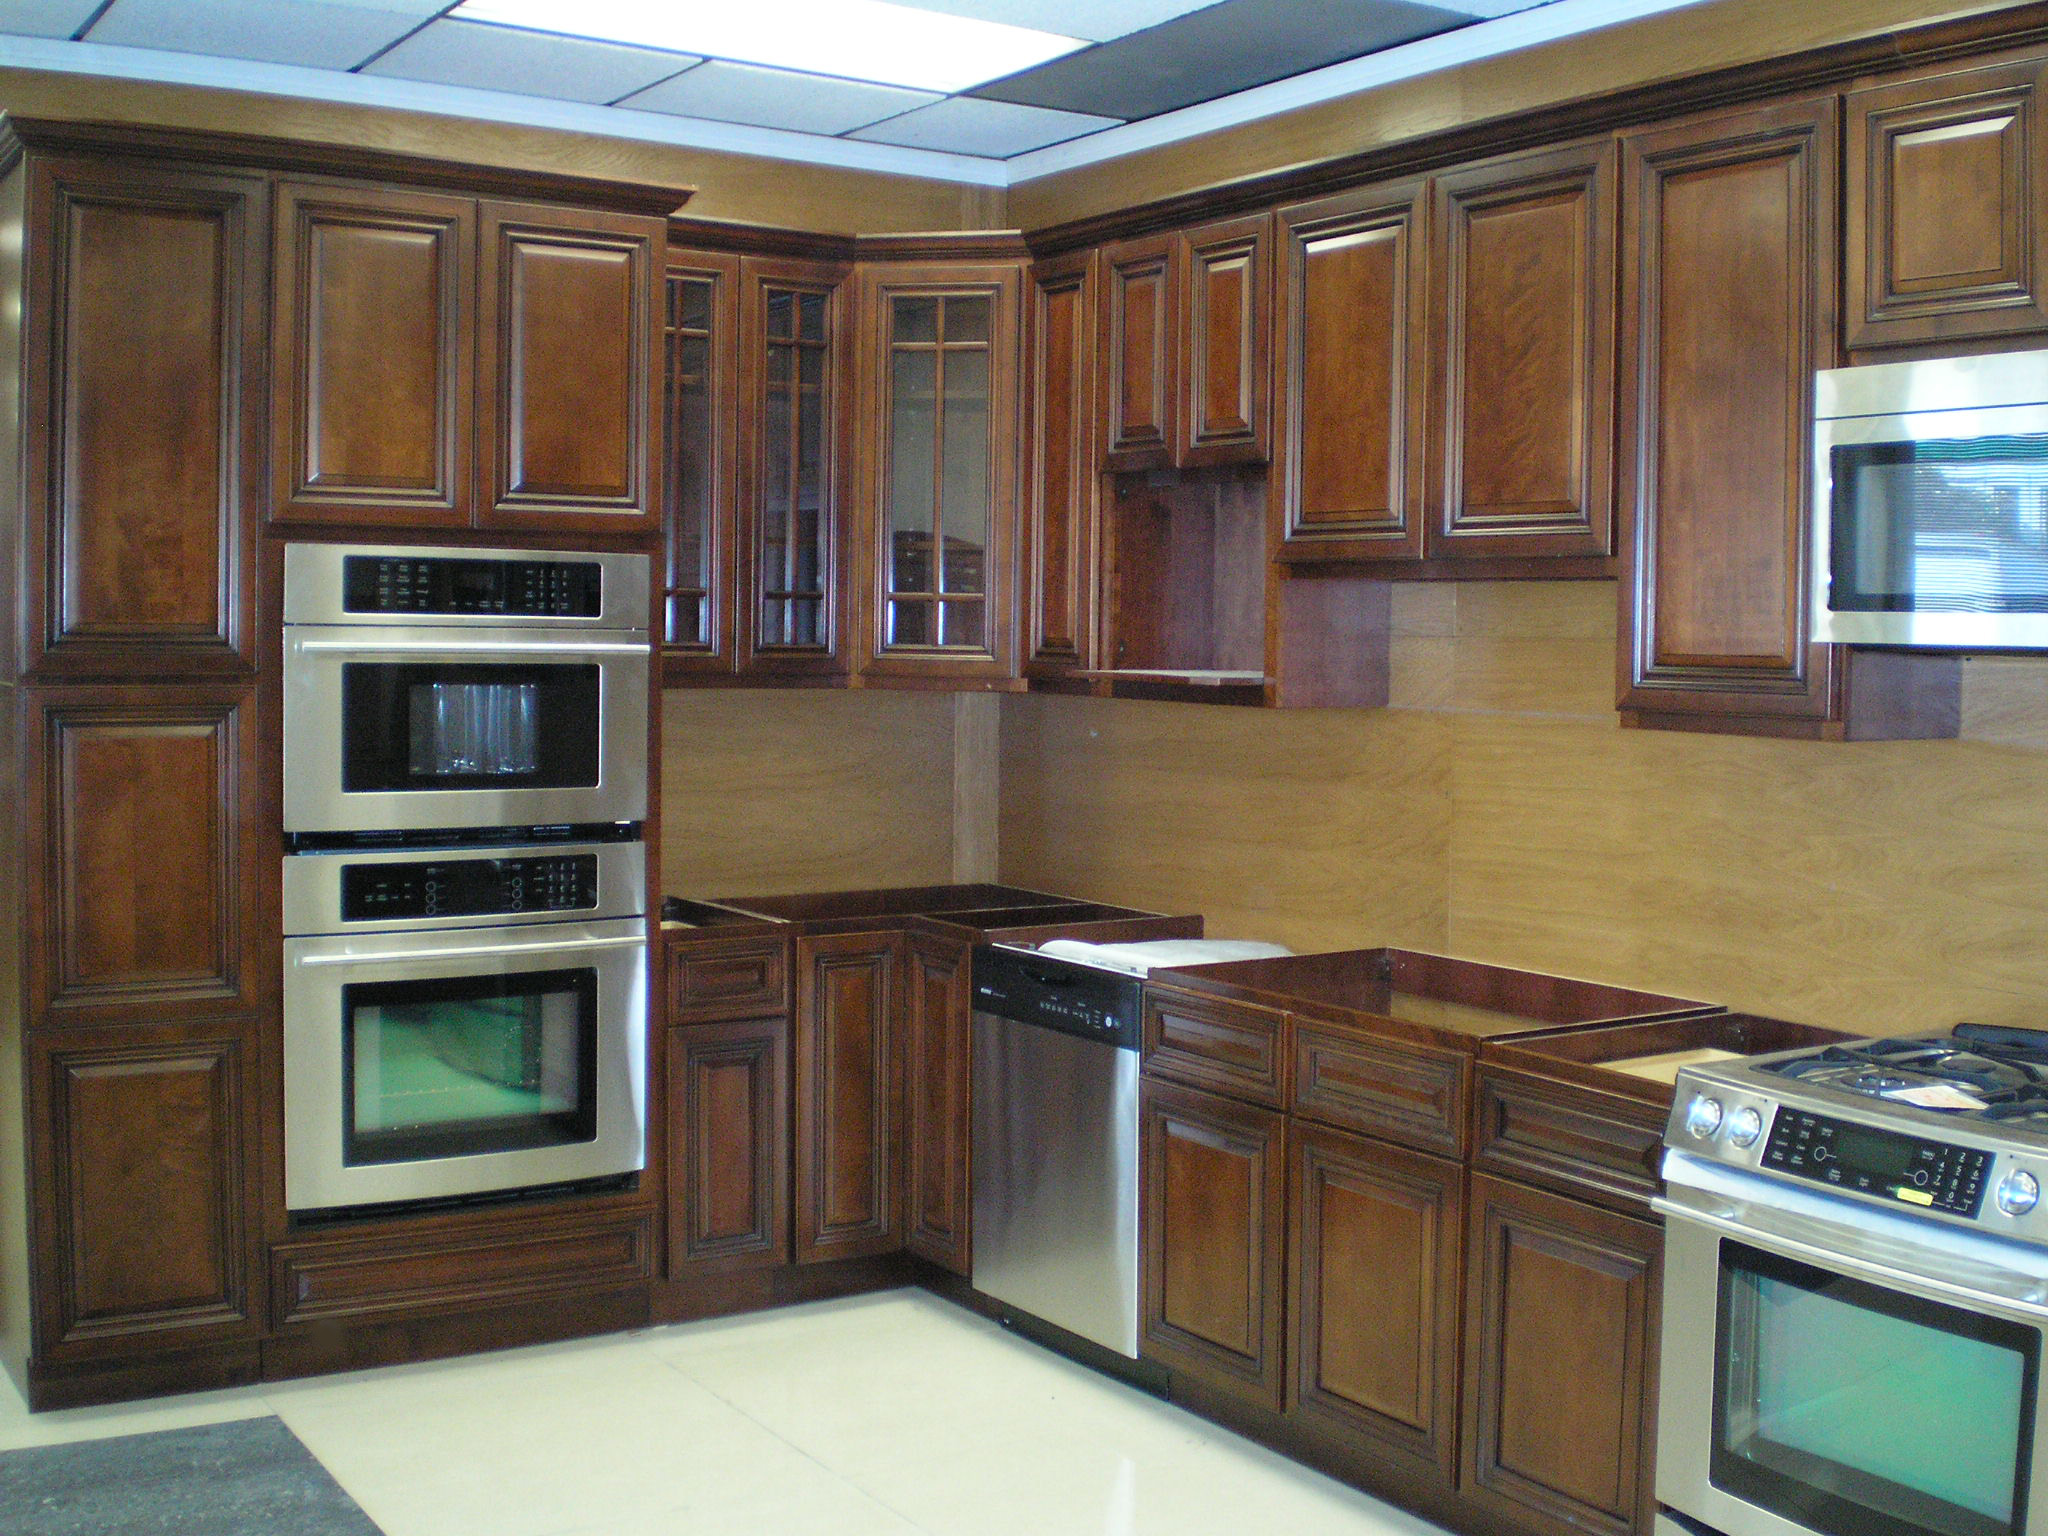 kitchen containers for sale exotic walnut kitchen cabinets solid wood kitchen cabinetry